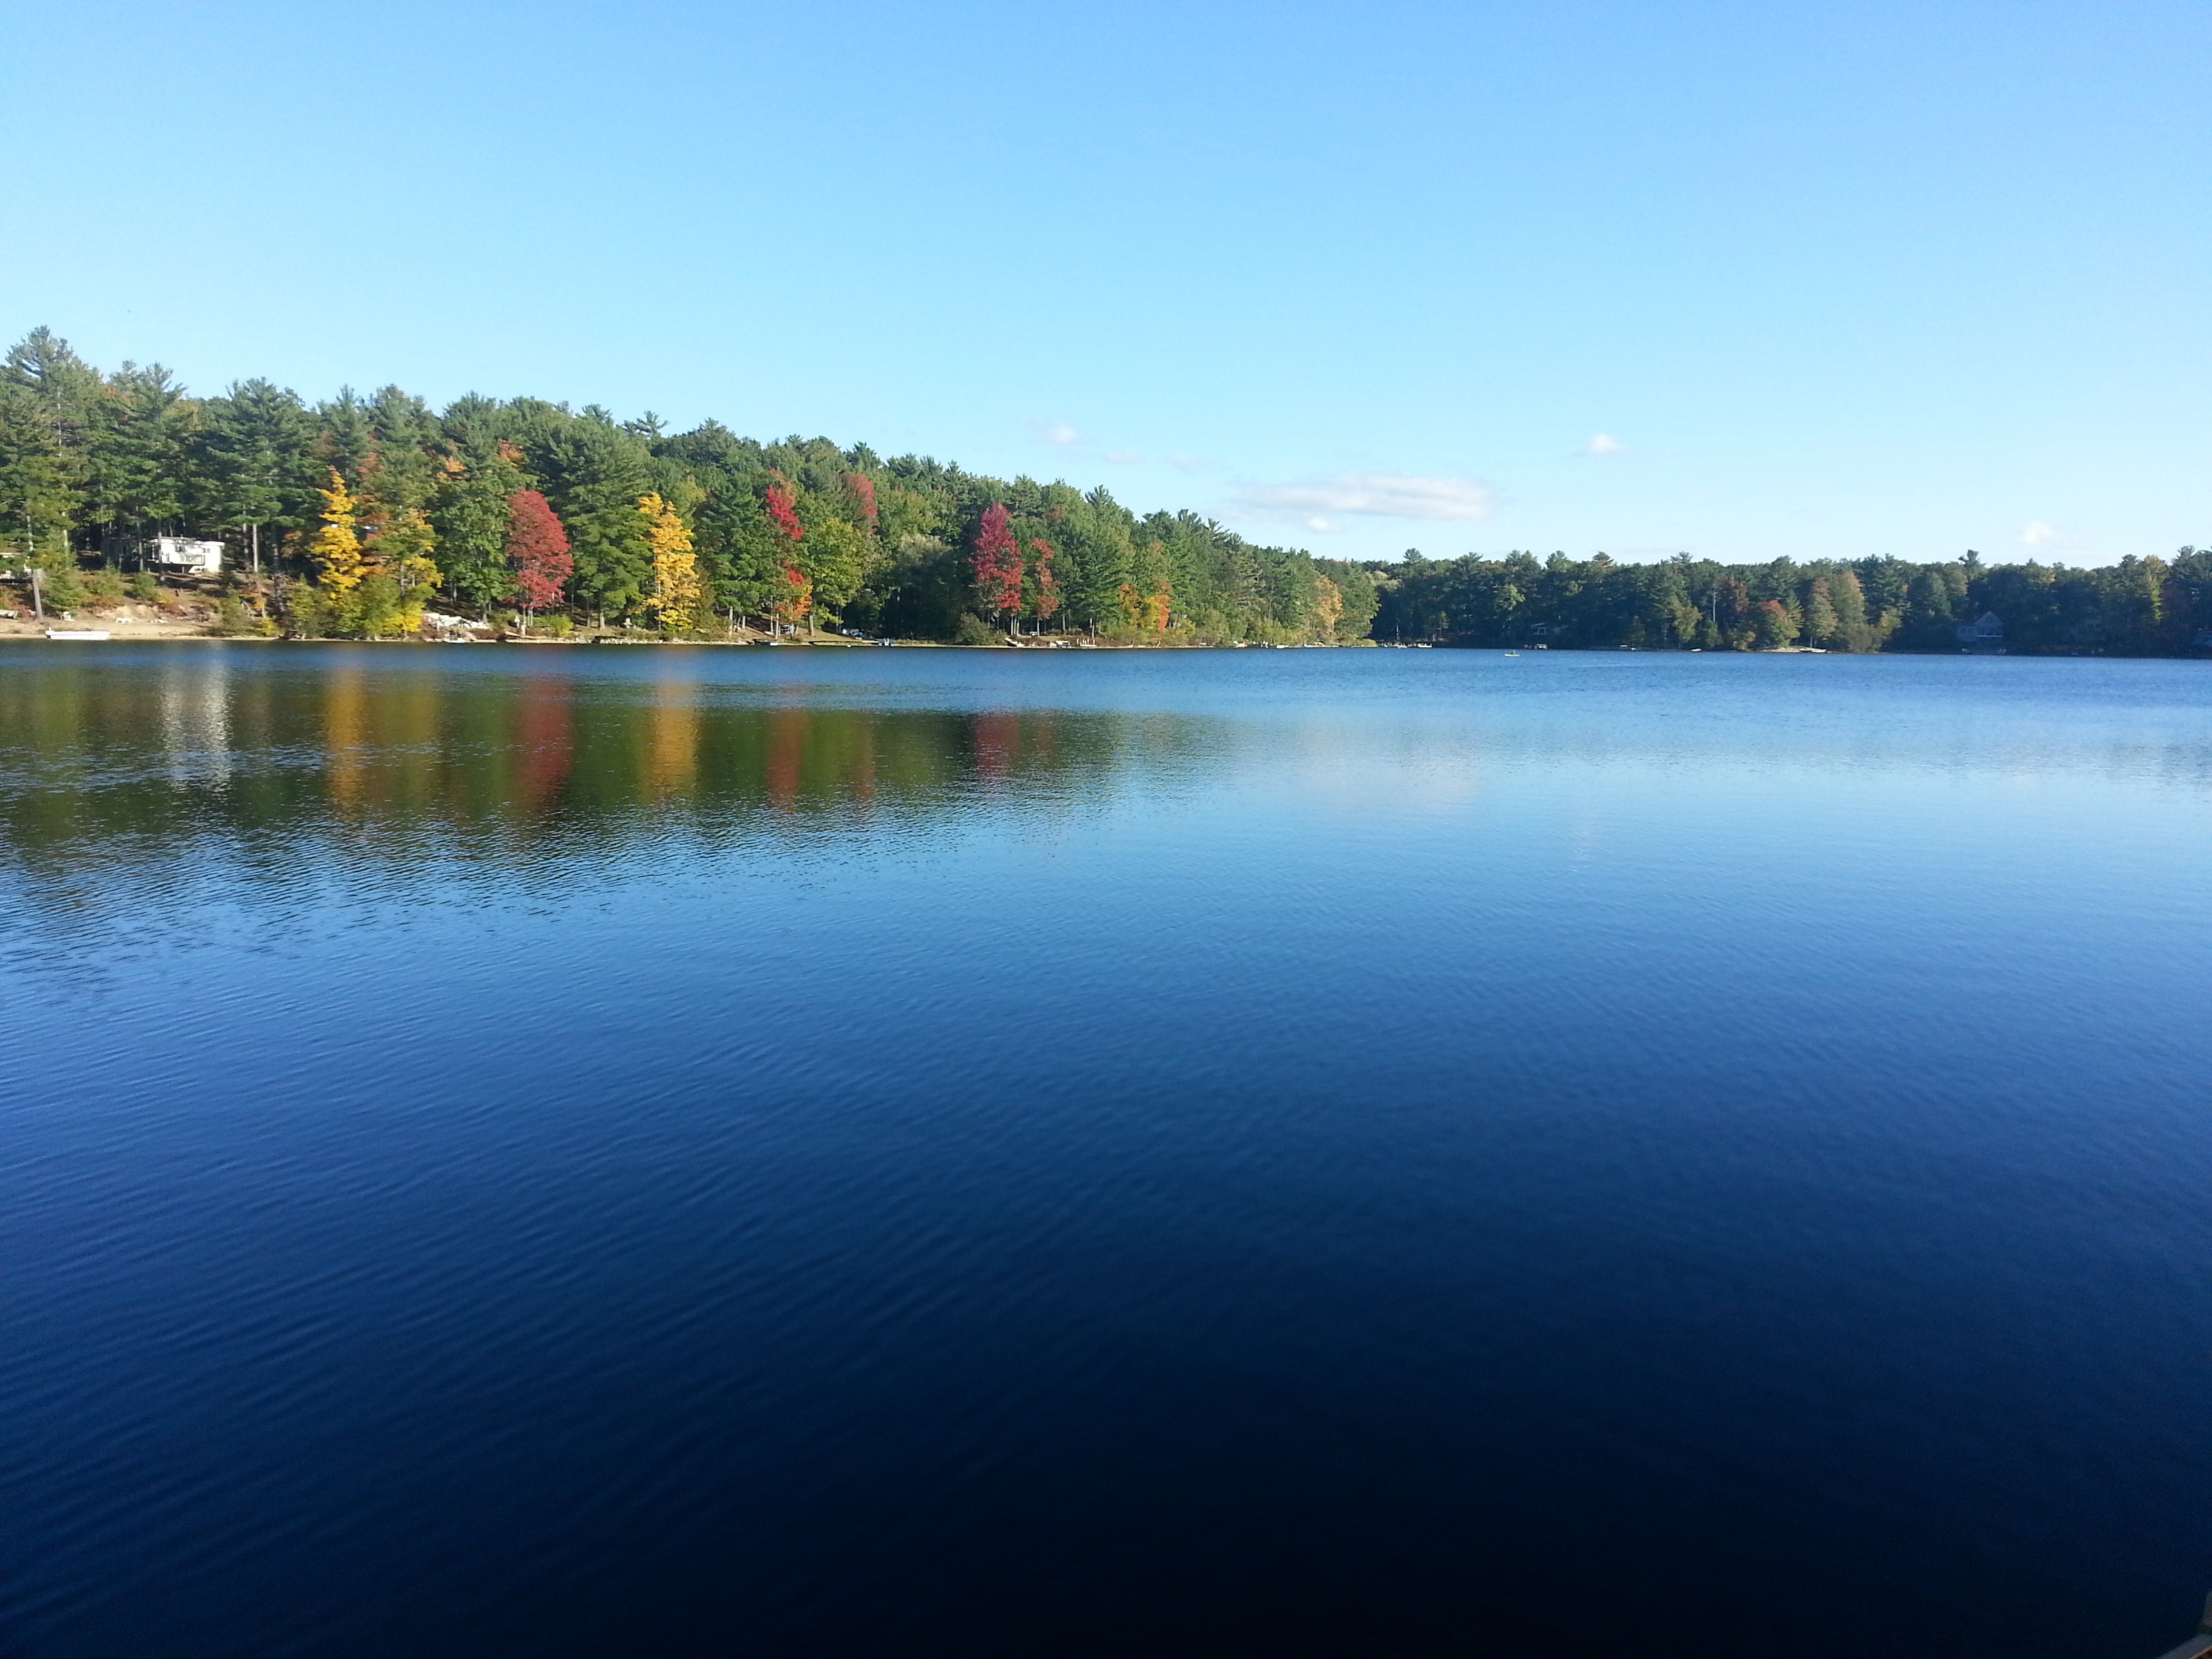 Early autumn in Beckley